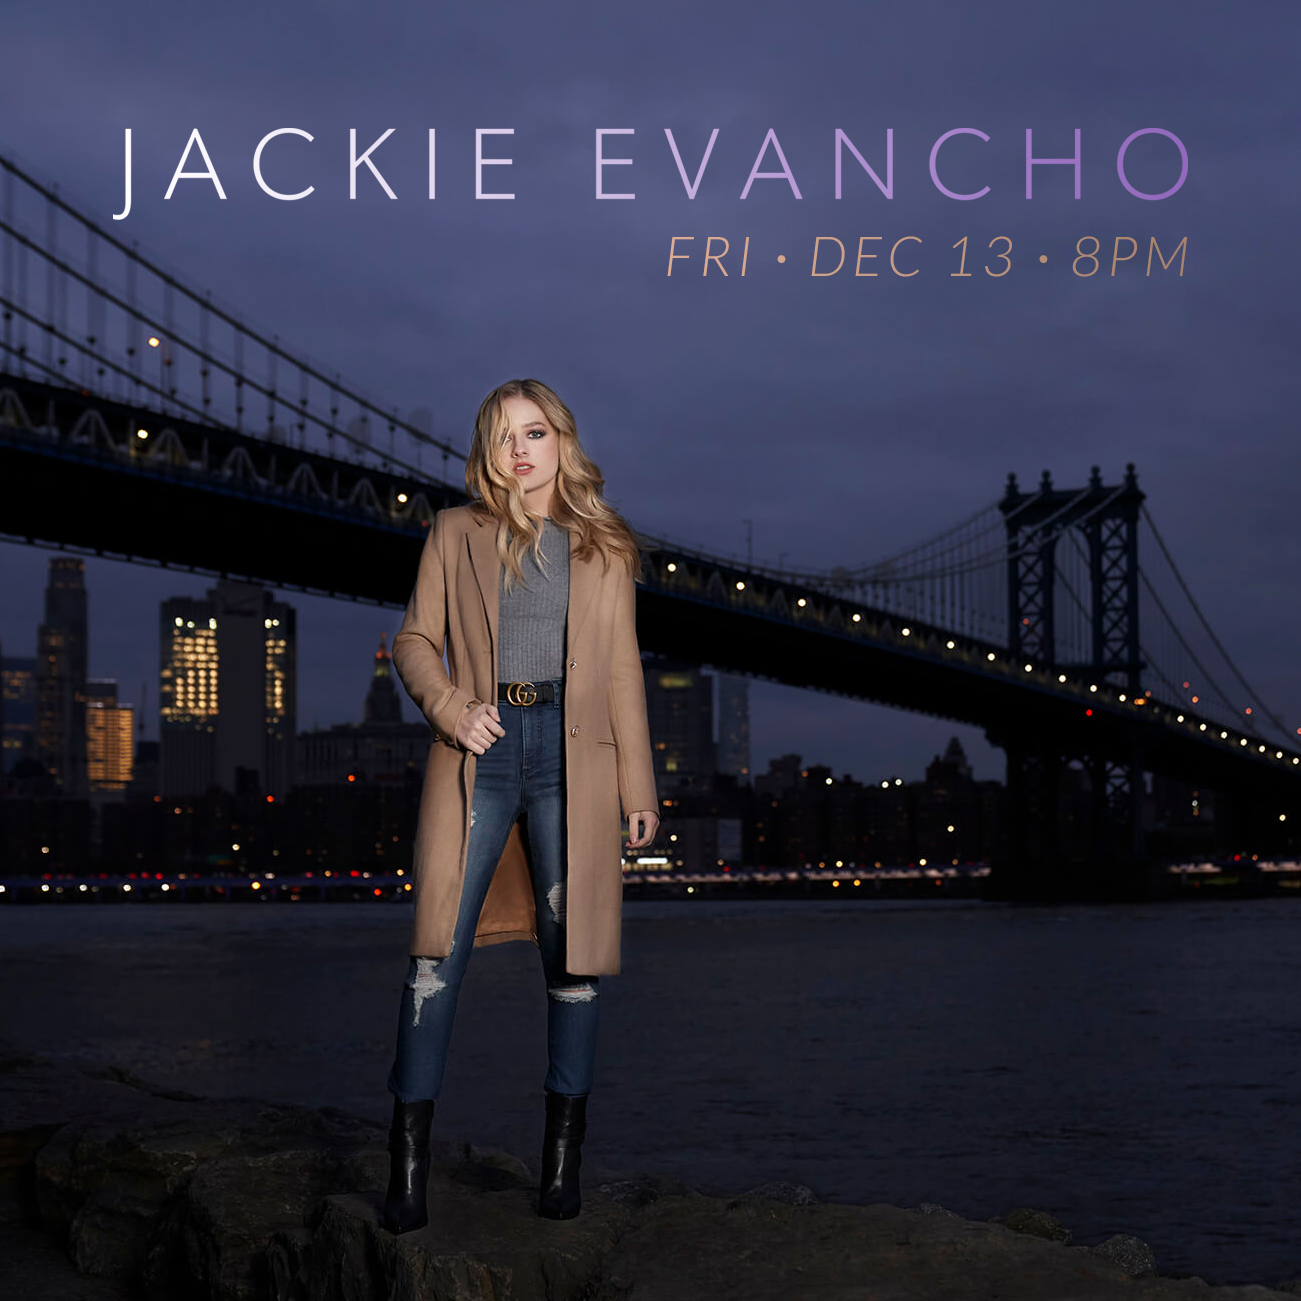 Jackie Evancho at The Newton Theatre in Newton on 2019-12-13